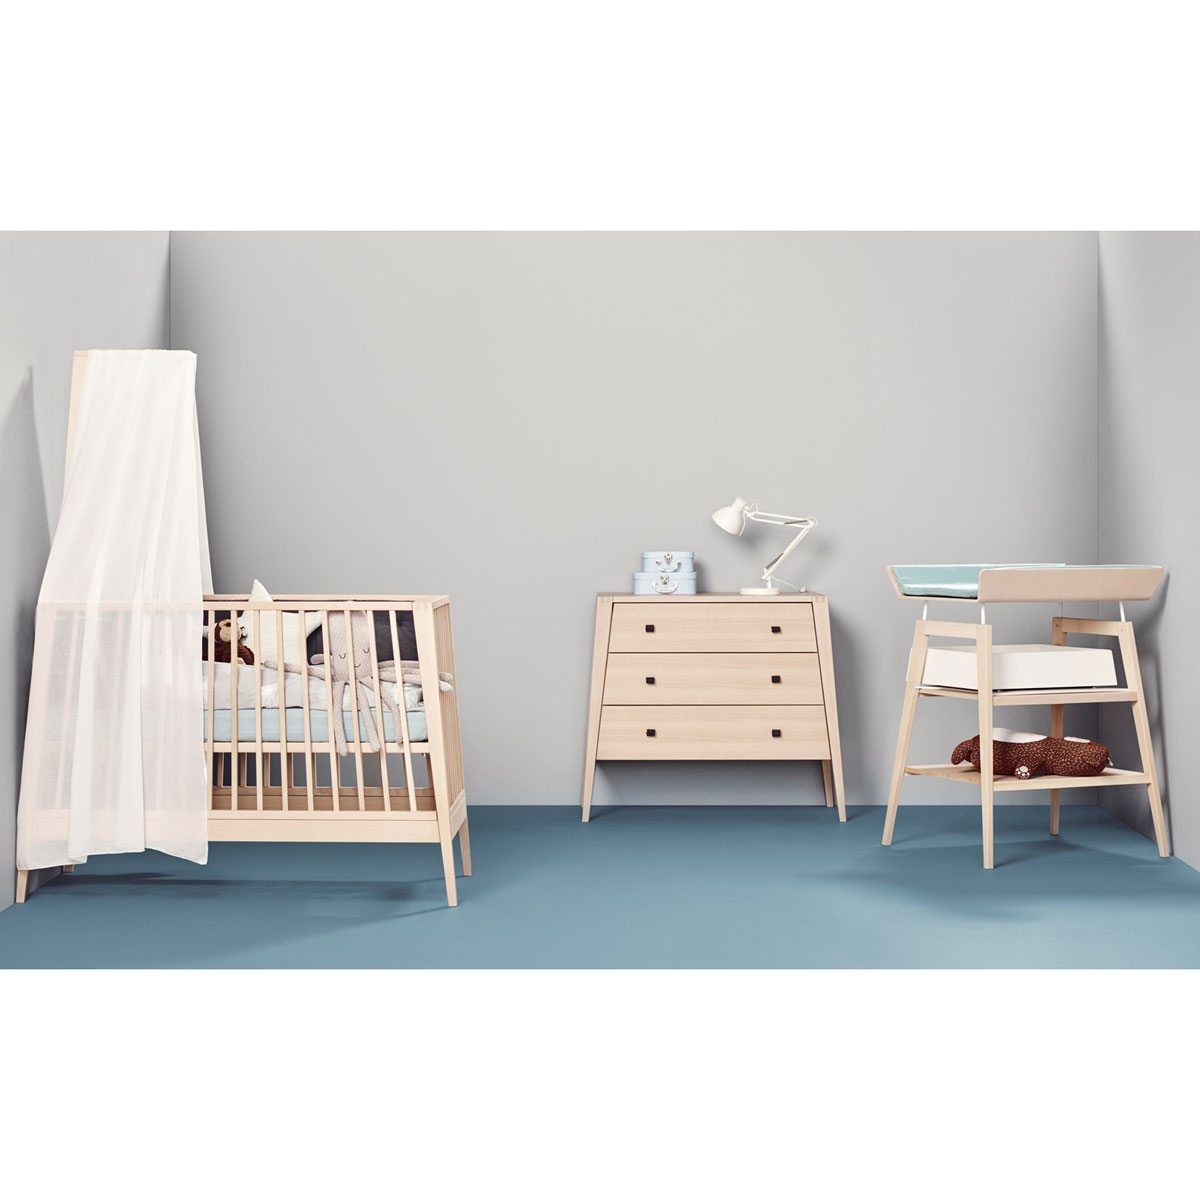 Full Size of Linea Babybett In Buche Treca Betten Bette Badewannen Ottoversand Romantisches Bett Kopfteil 140 Bei Ikea Trends Japanisches Clinique Even Better Make Up Weiß Bett Leander Bett